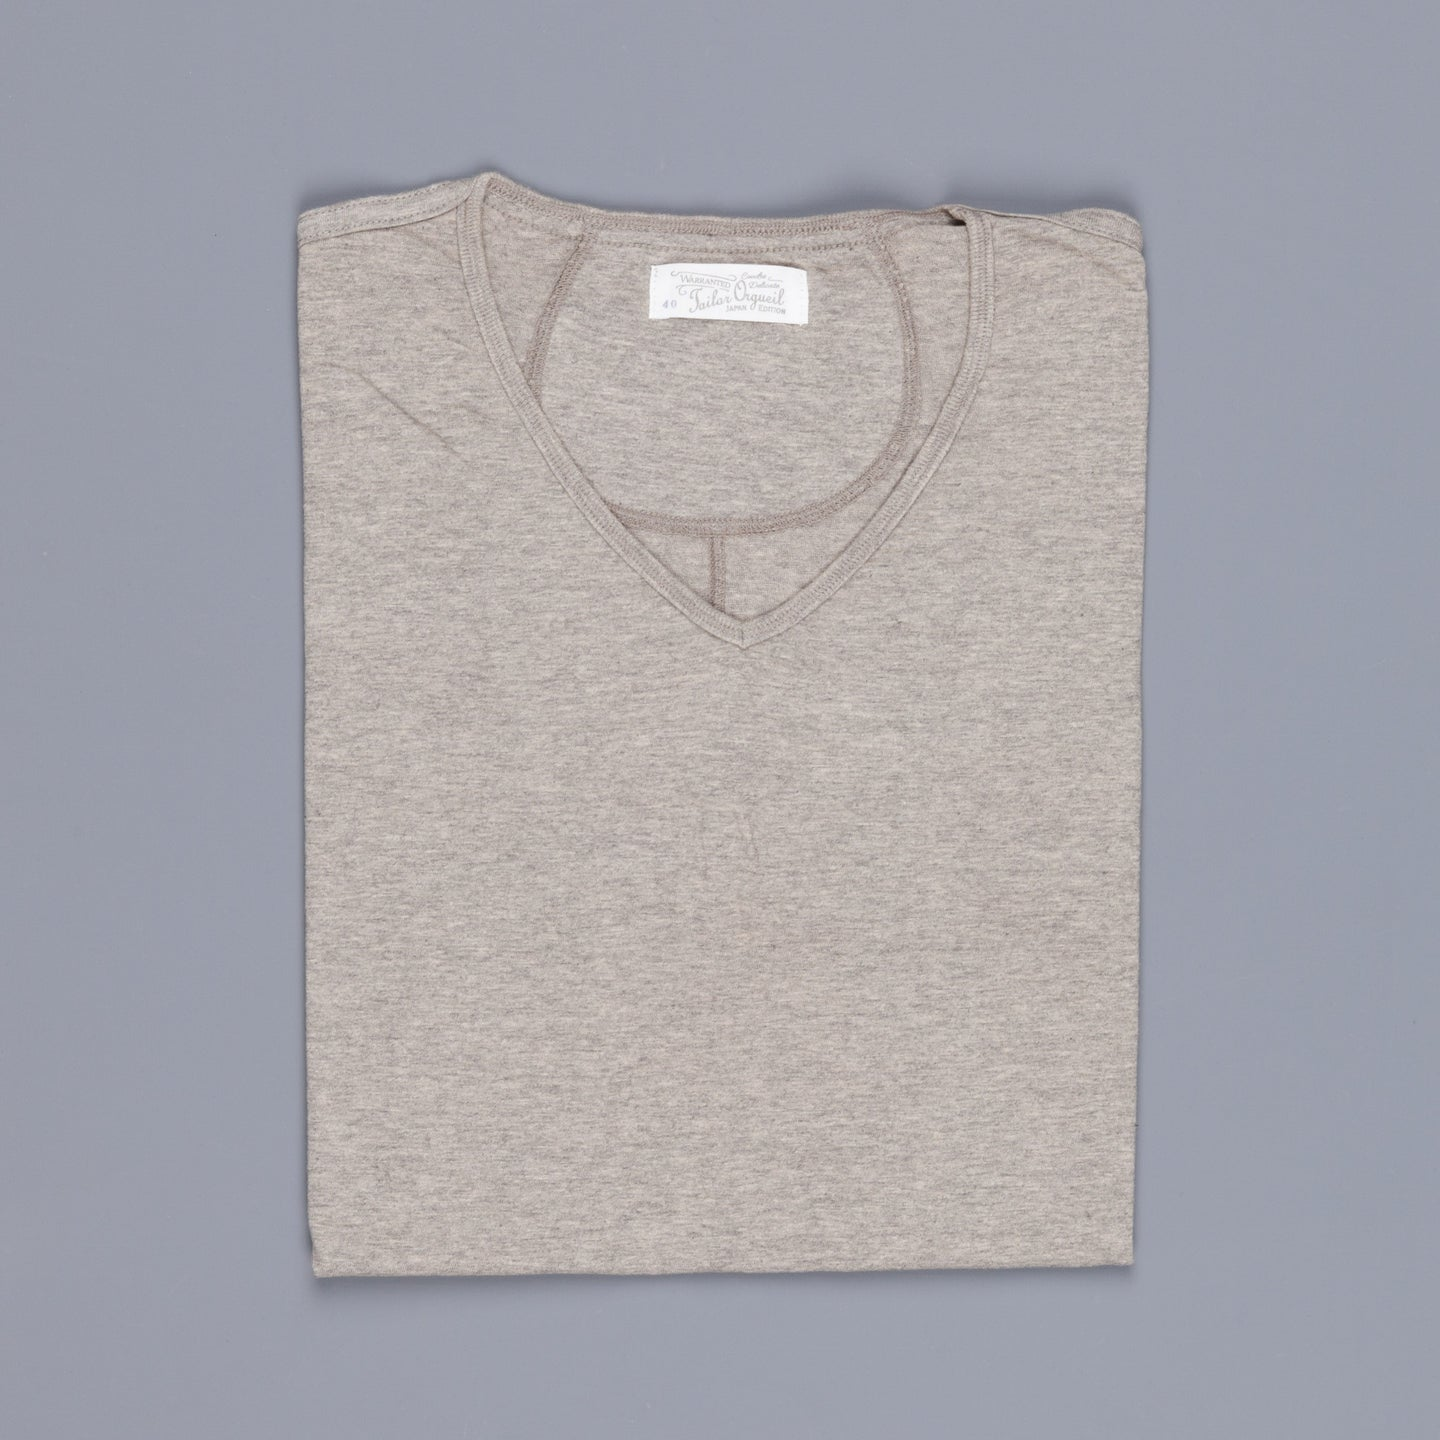 Orgueil 9005 shirt V-Neck Grey